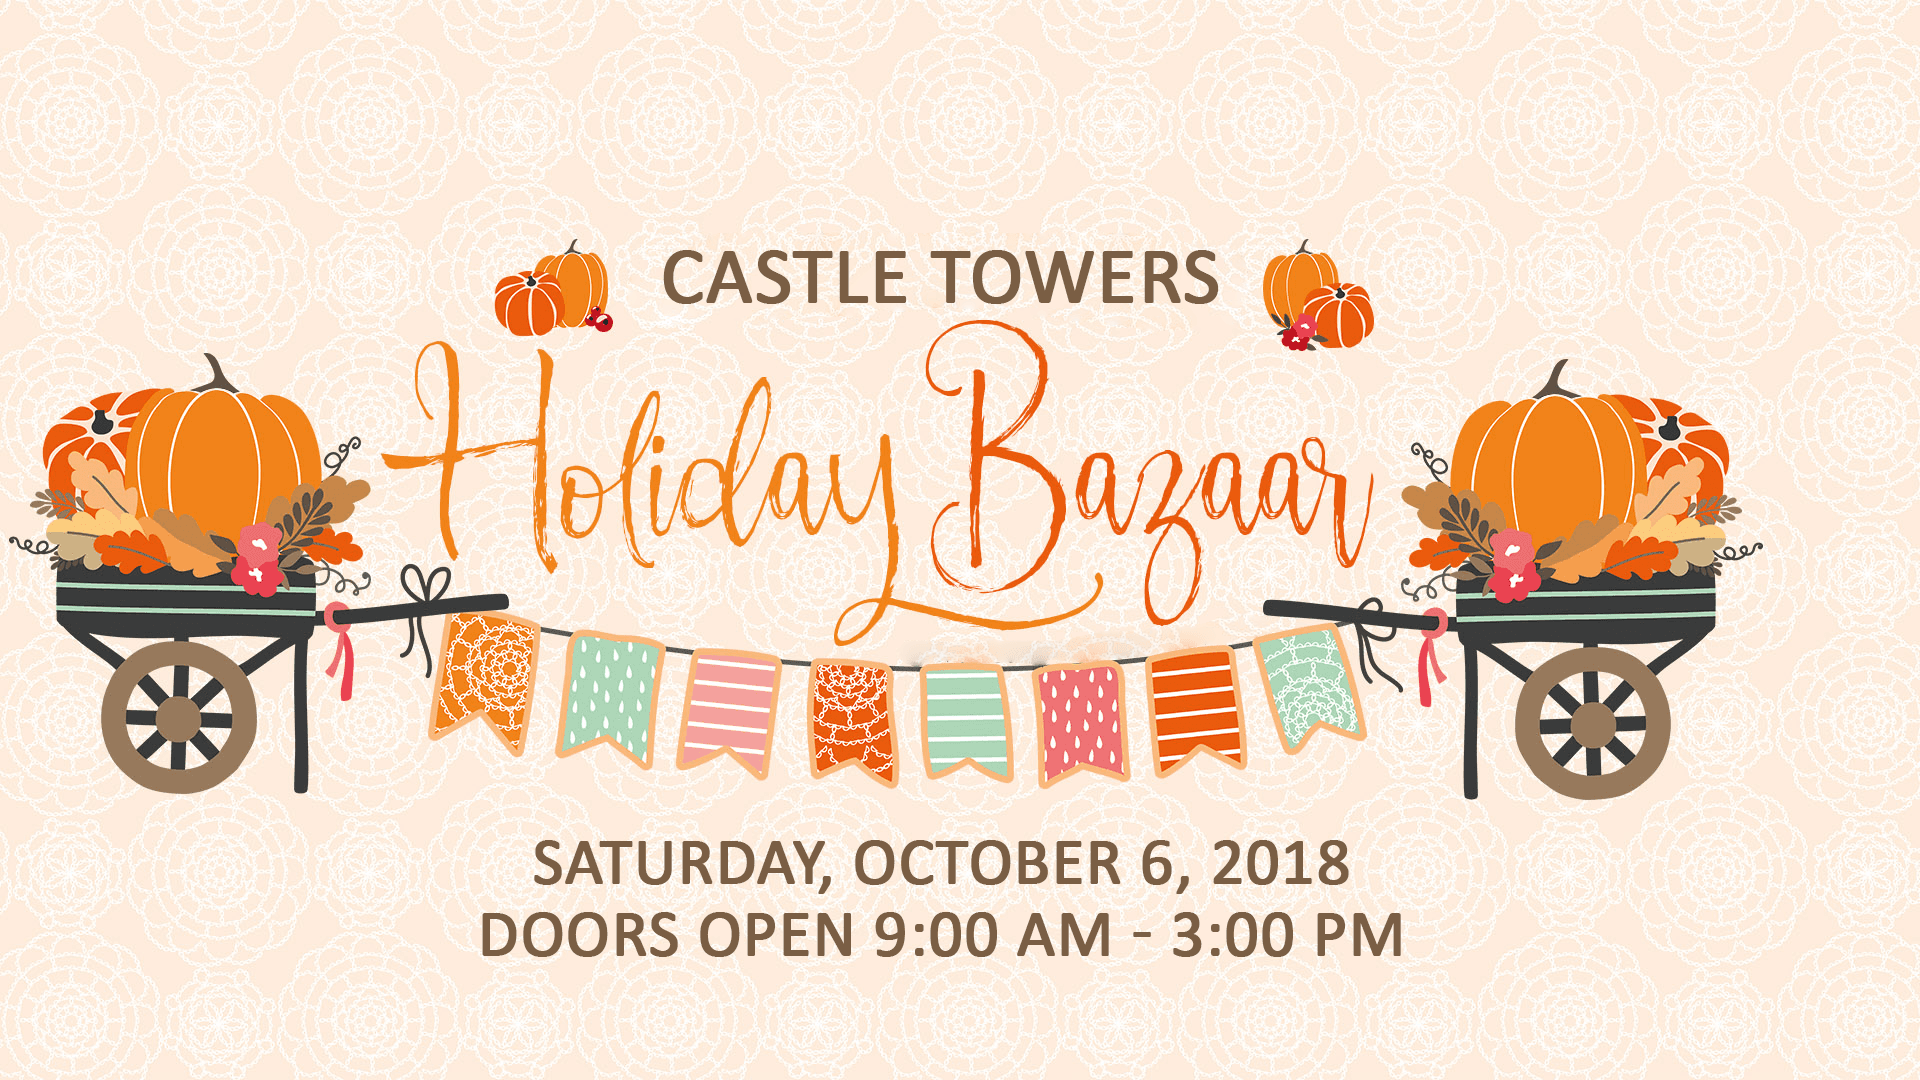 Castle Towers Bazaar